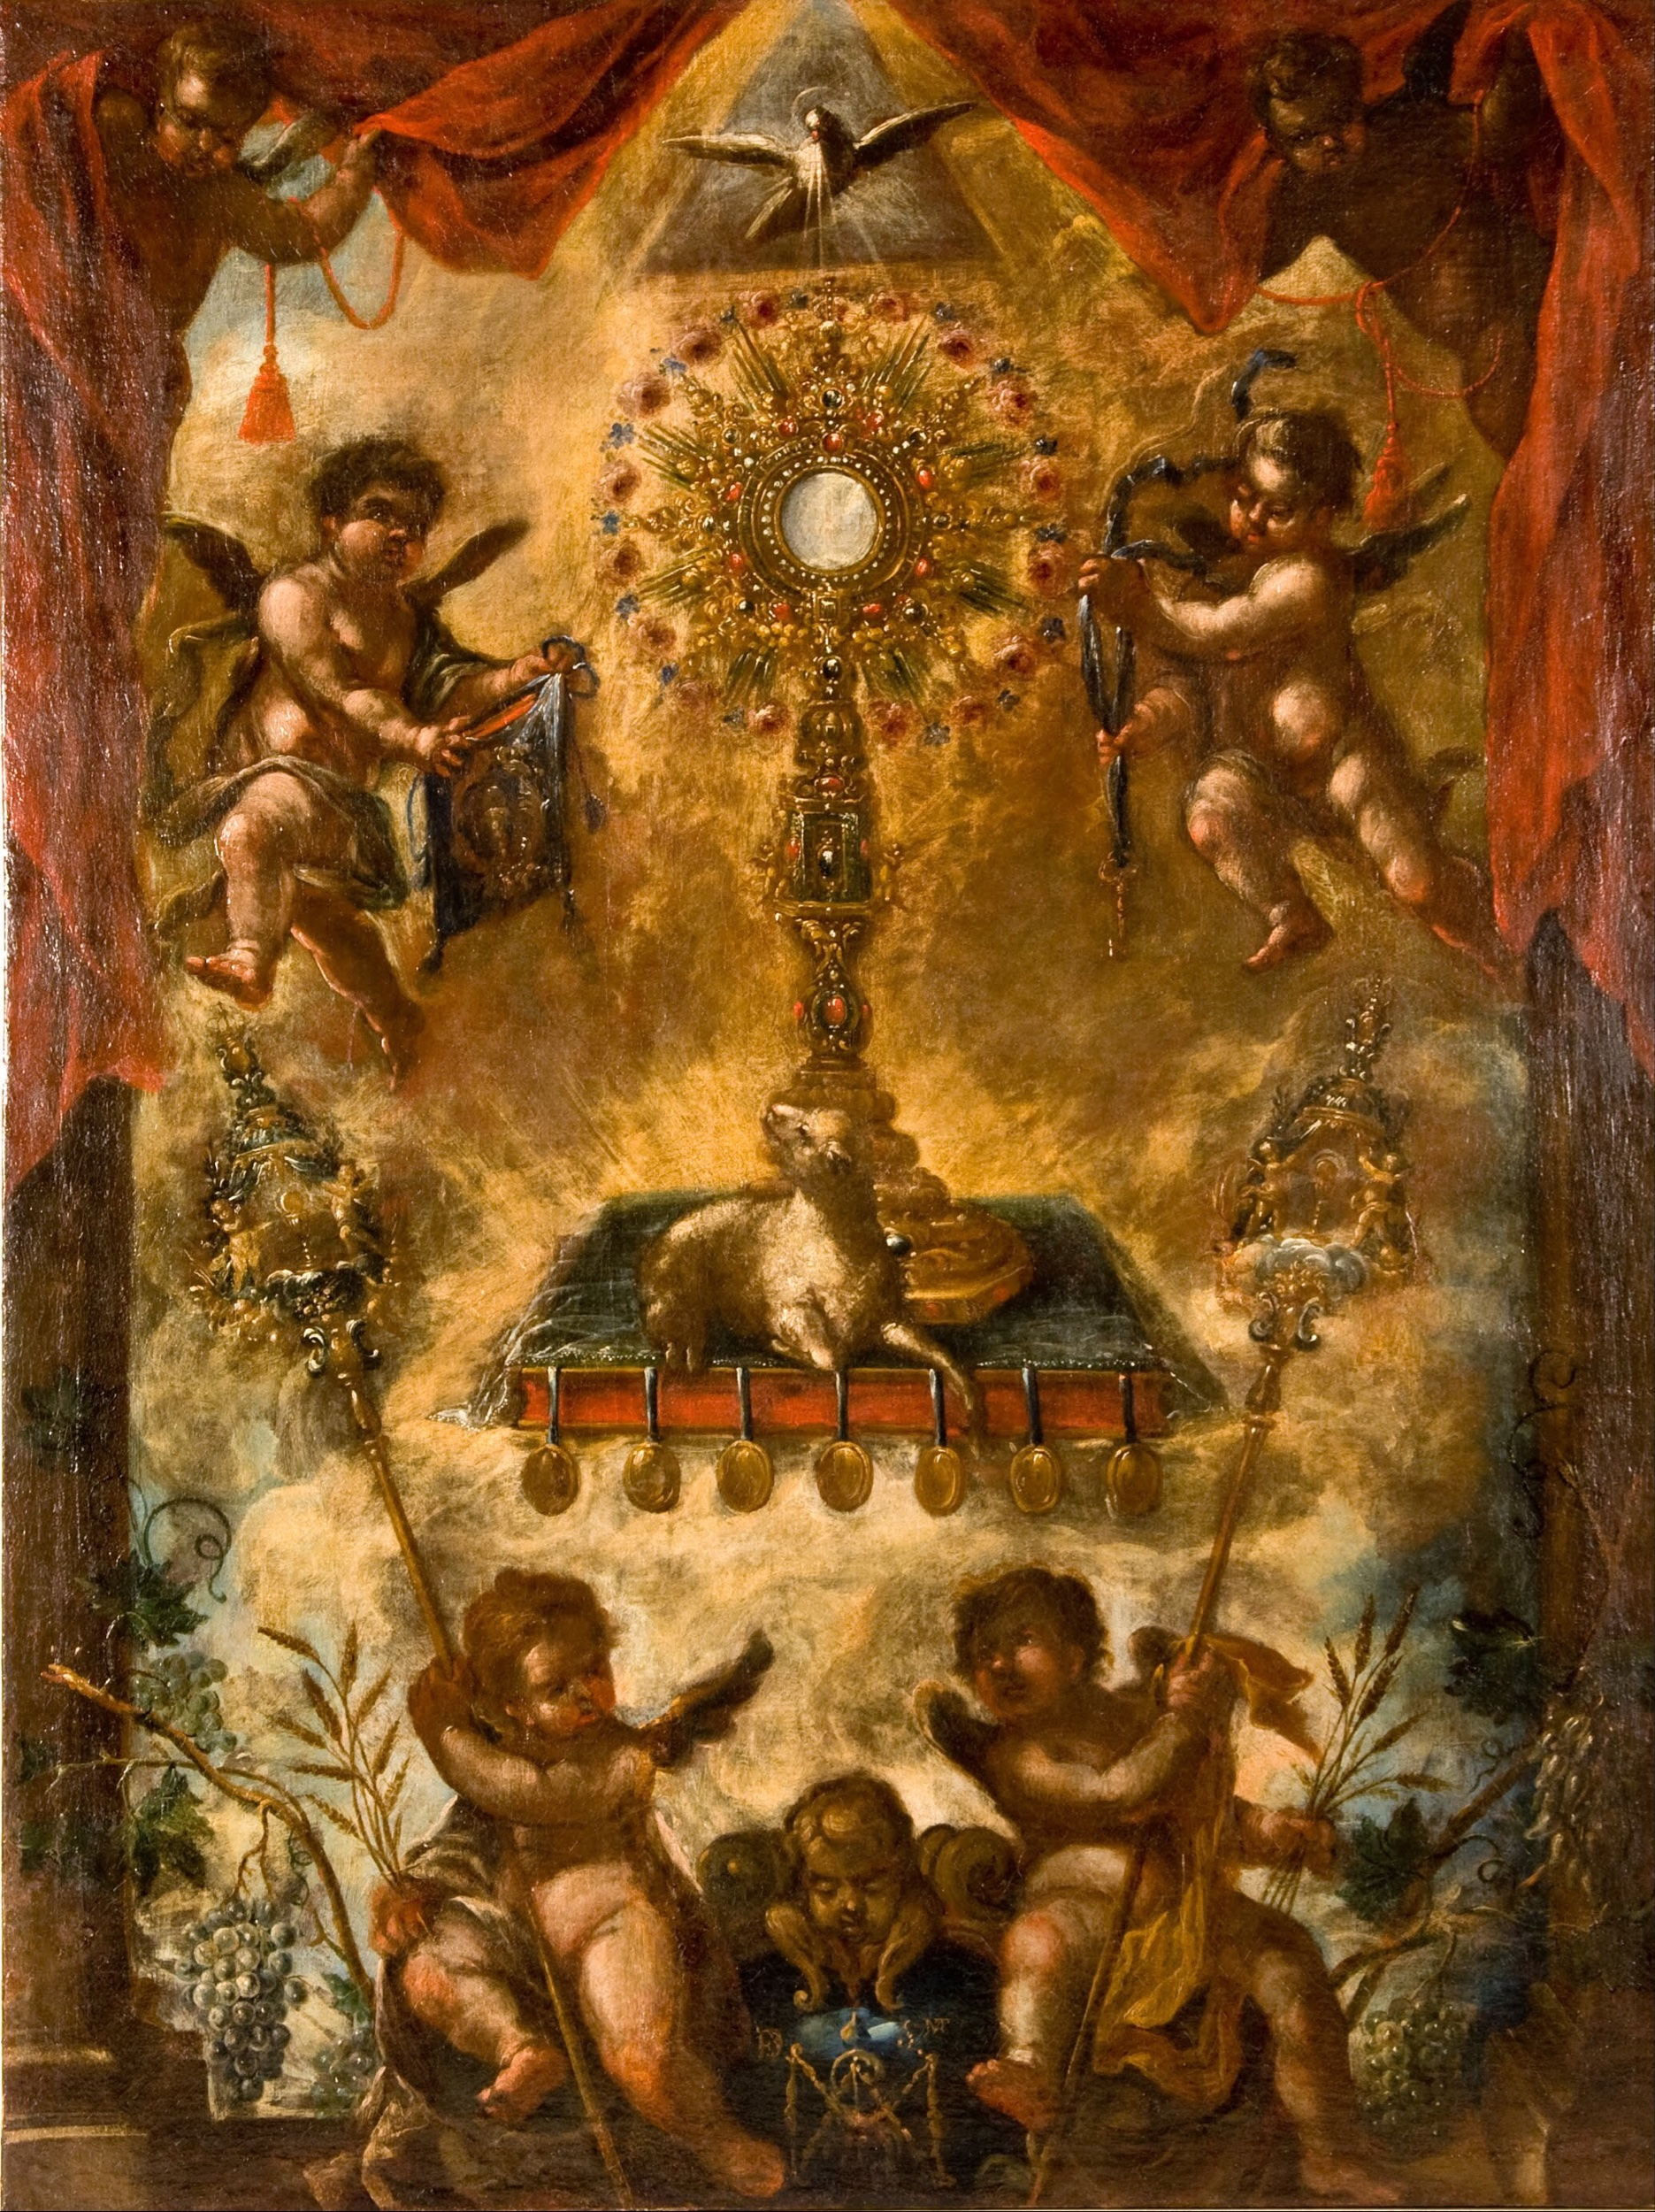 Artist: unknown. Title: Allegory of the Eucharist. Allegory of the Christian Sacrament of the Eucharist. Date: circa 1676-1725. Google Art Project. This work is in the public domain.